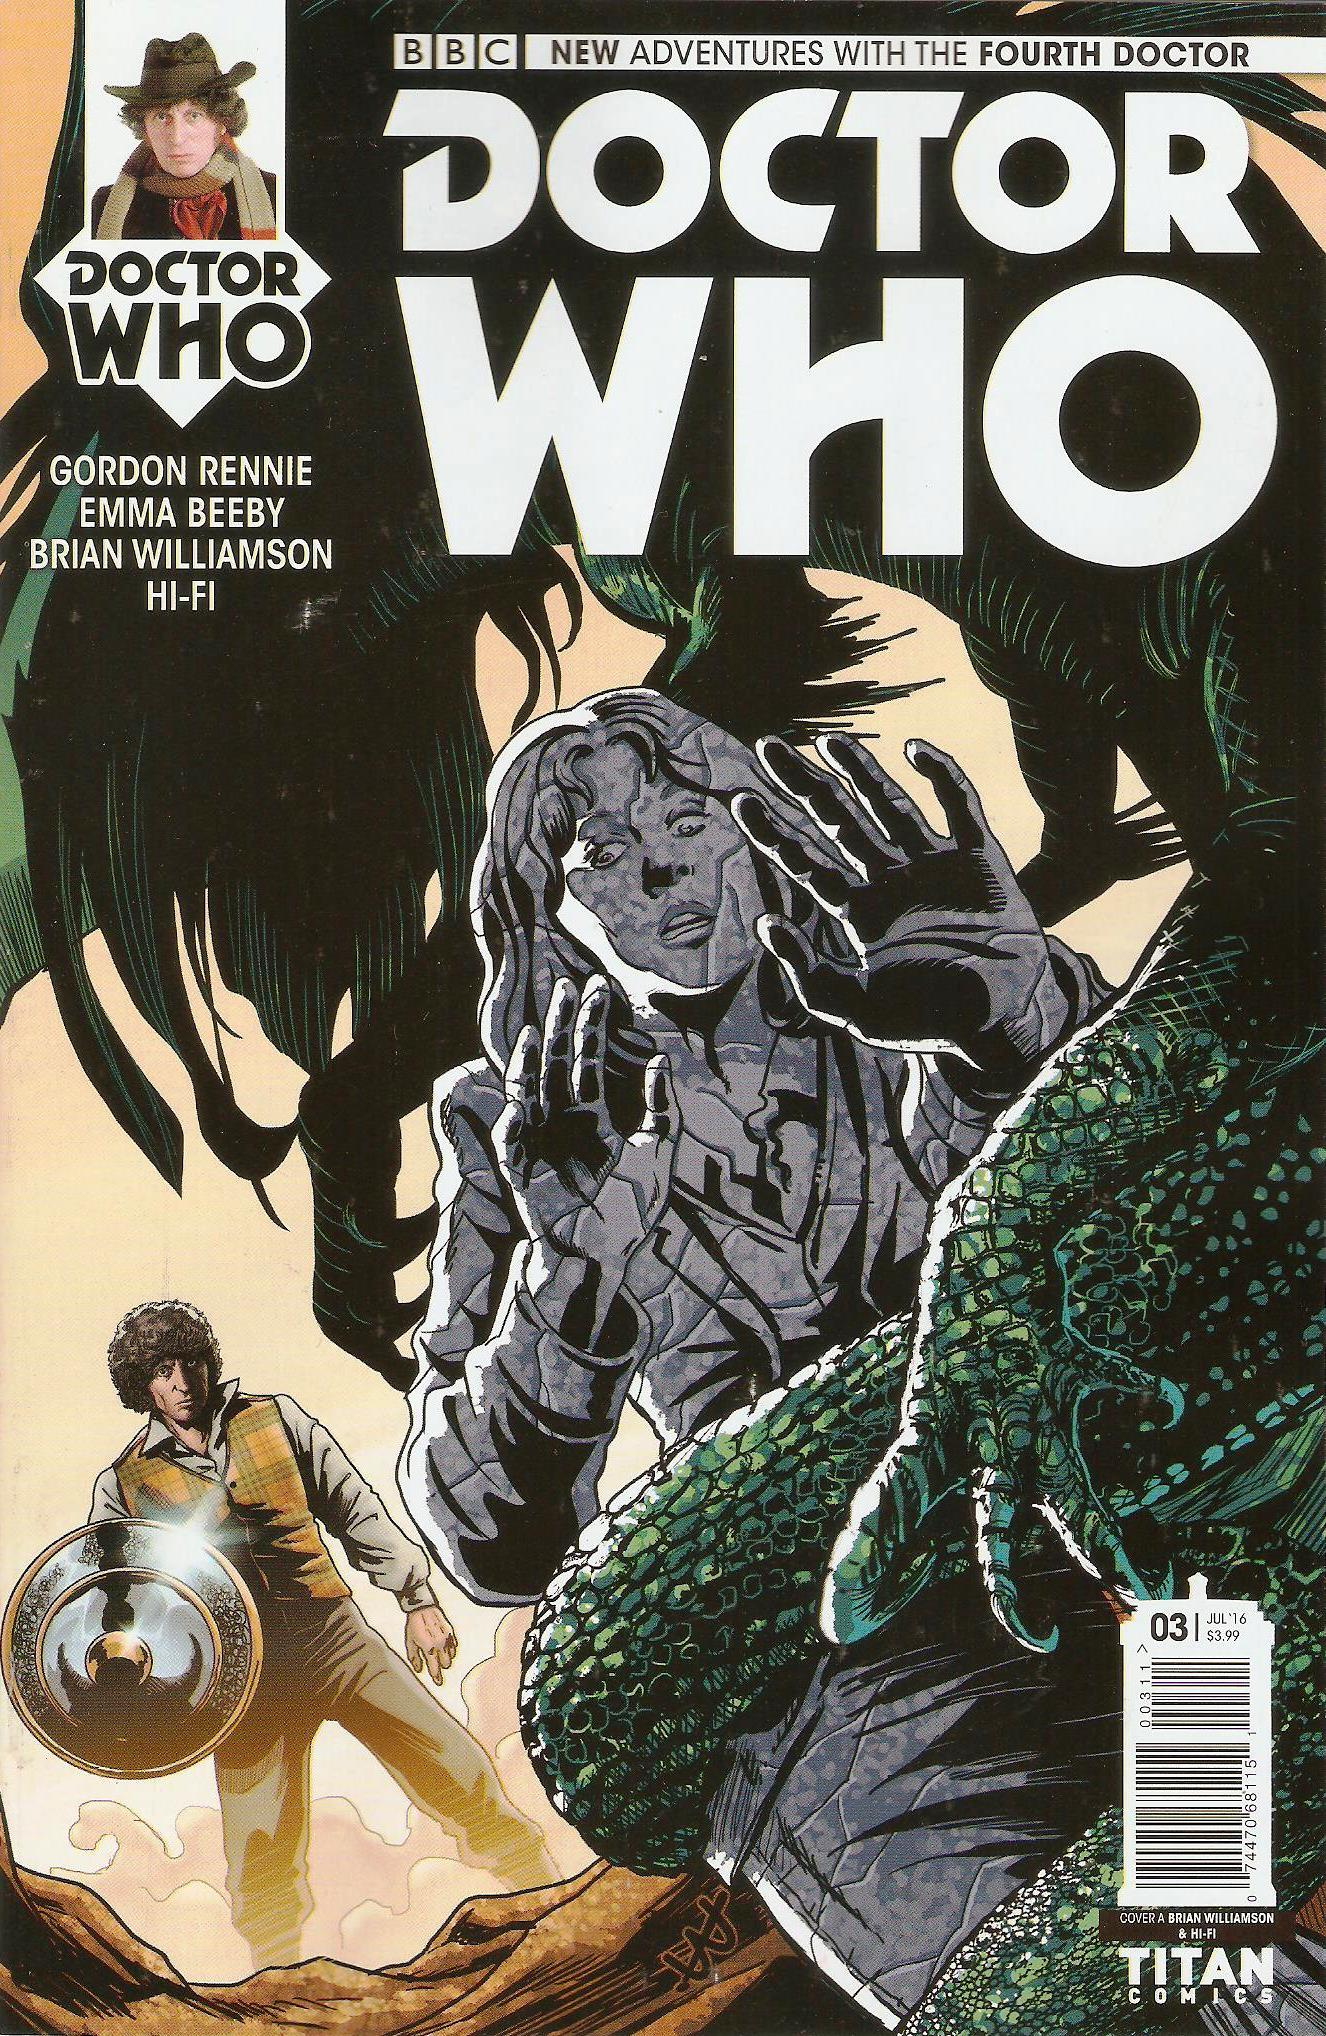 Fourth doctor issue 3a